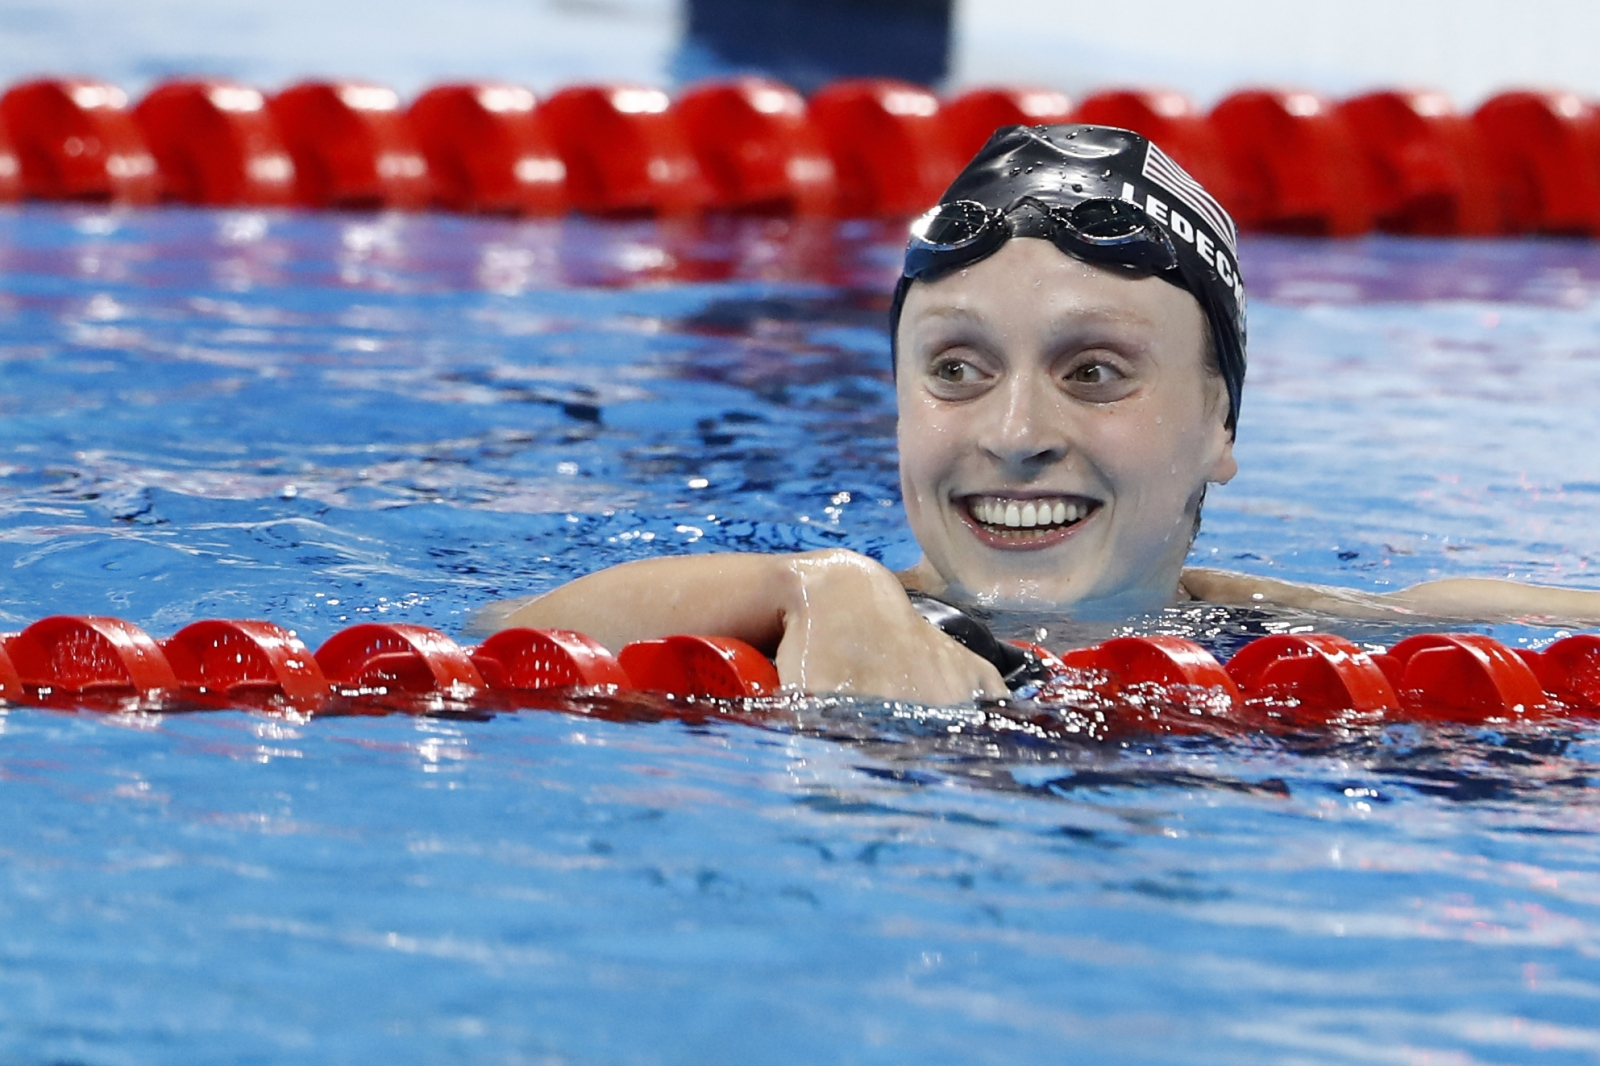 Katie Ledecky shatters world record in 800 free, wins gold